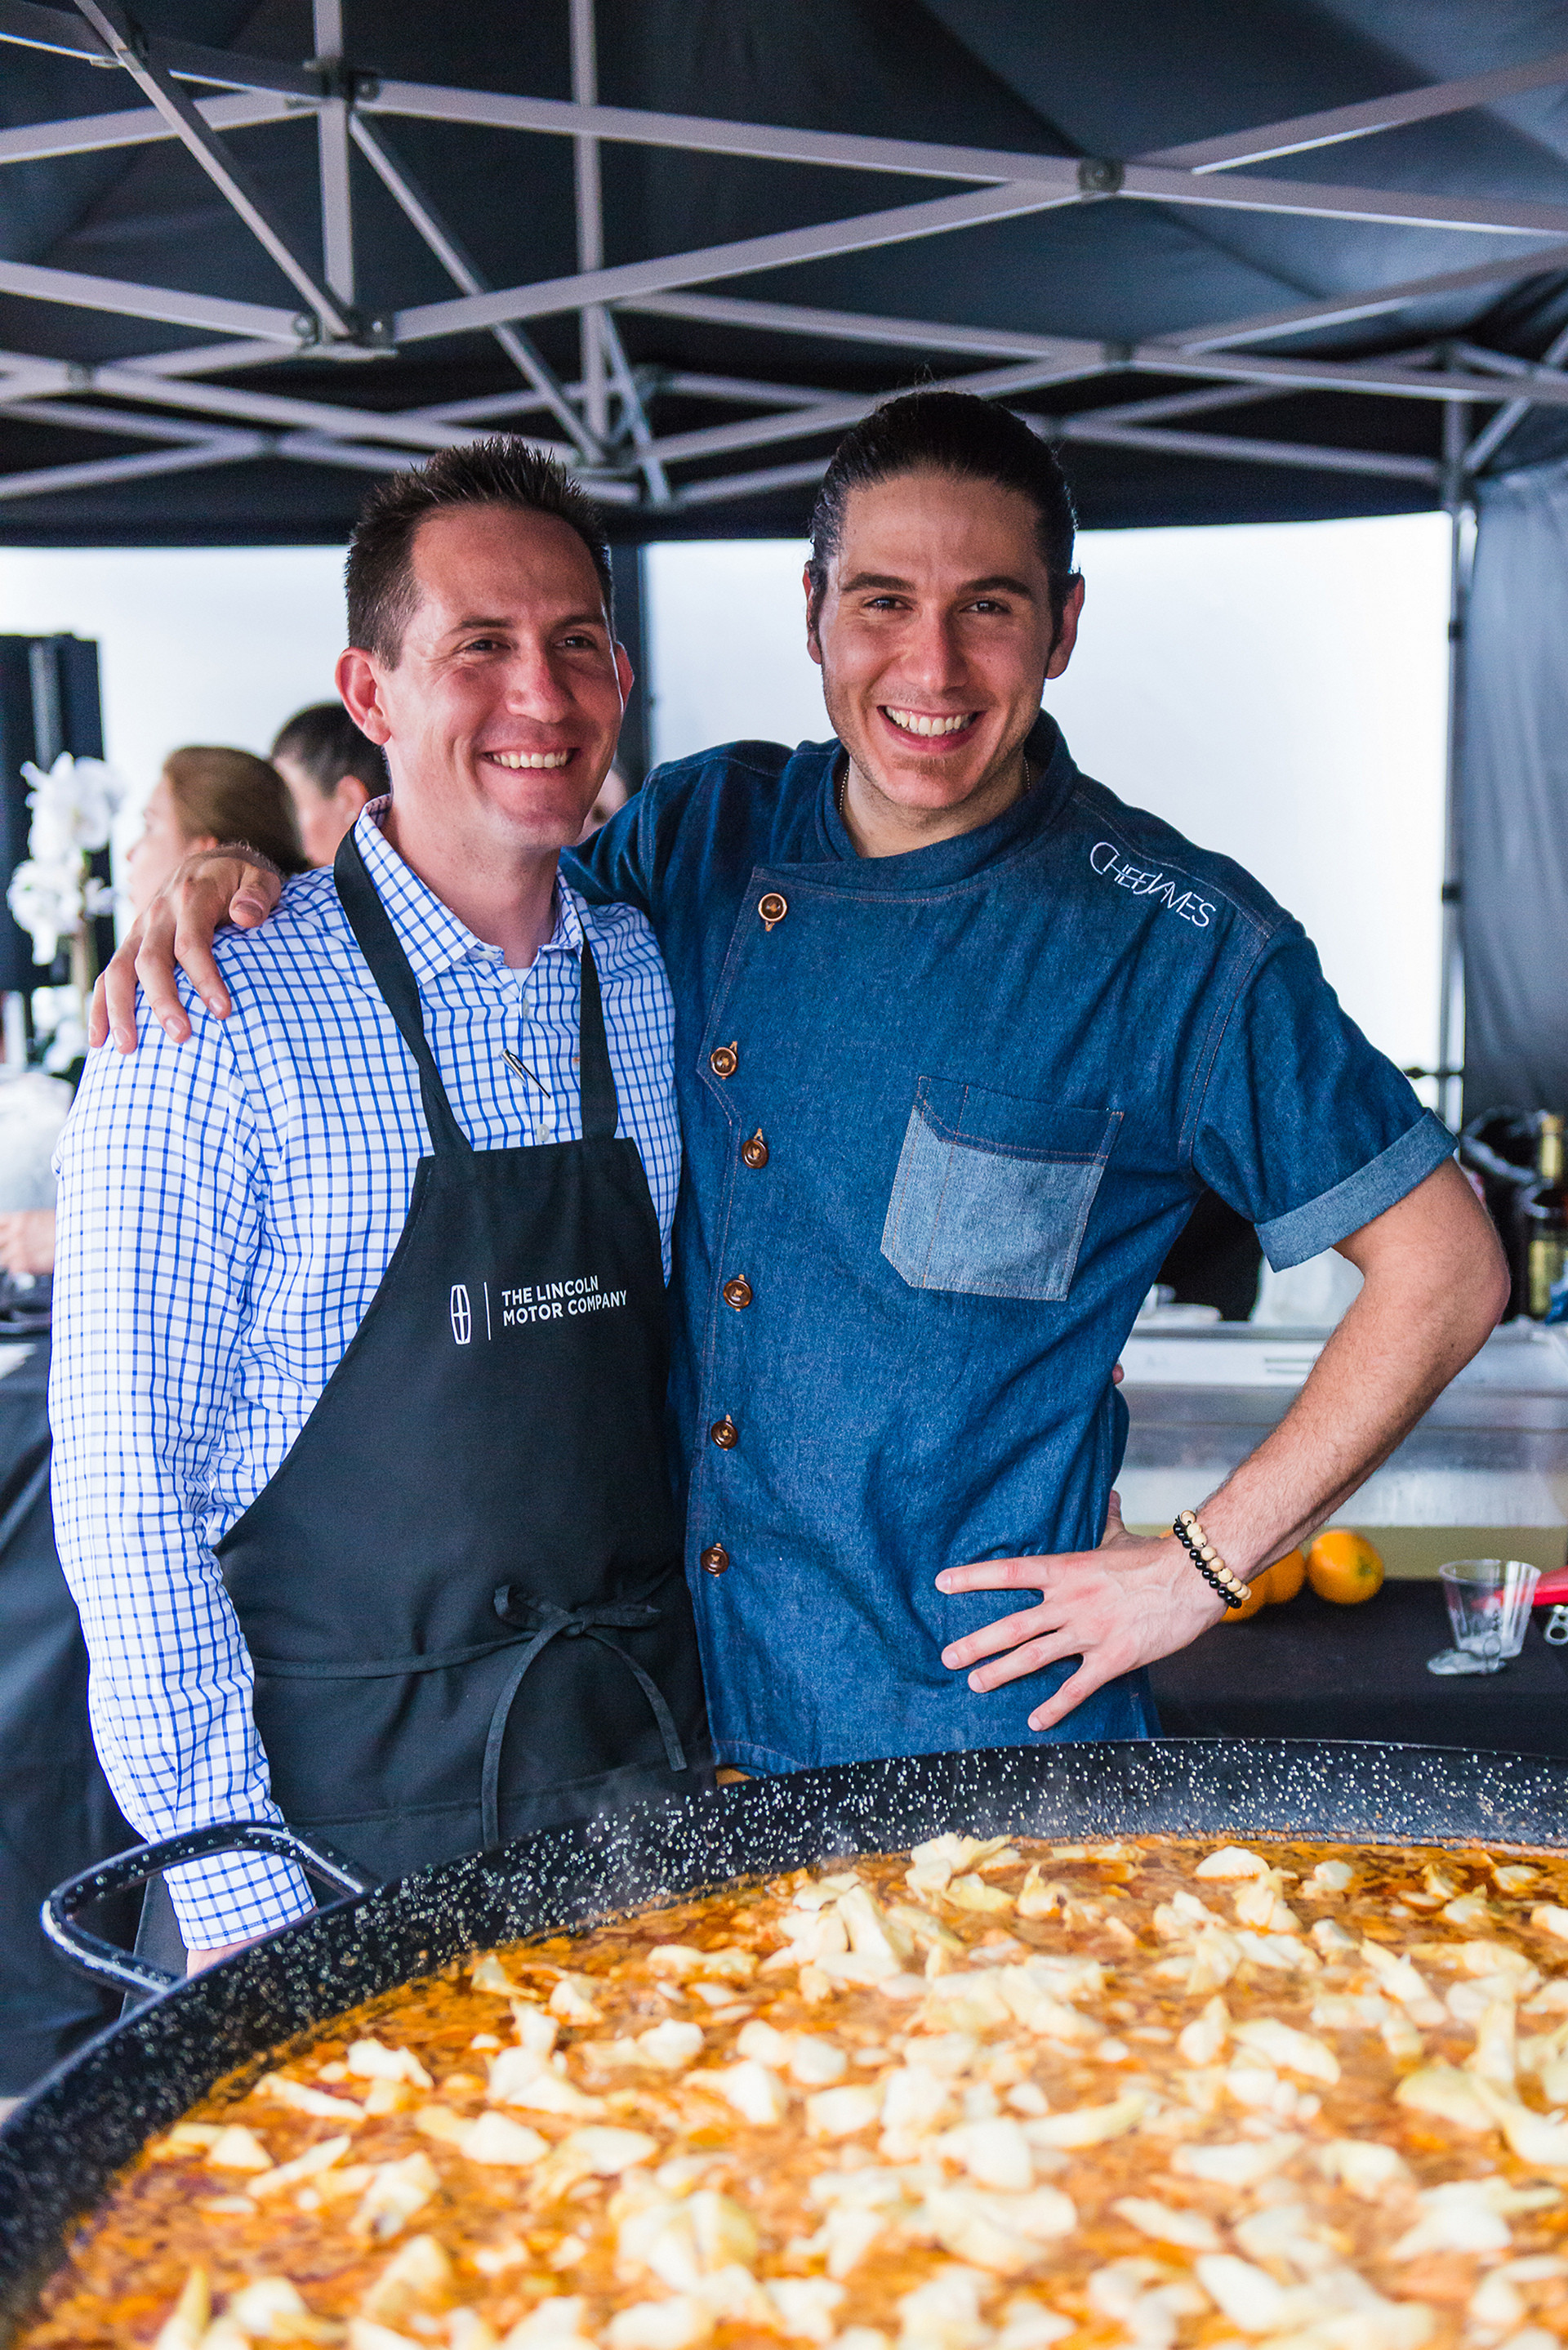 Eric Turner, Lincoln Continental Brand Manager, giving celebrity chef James Tahhan a hand with the paella © Ford Motor Company